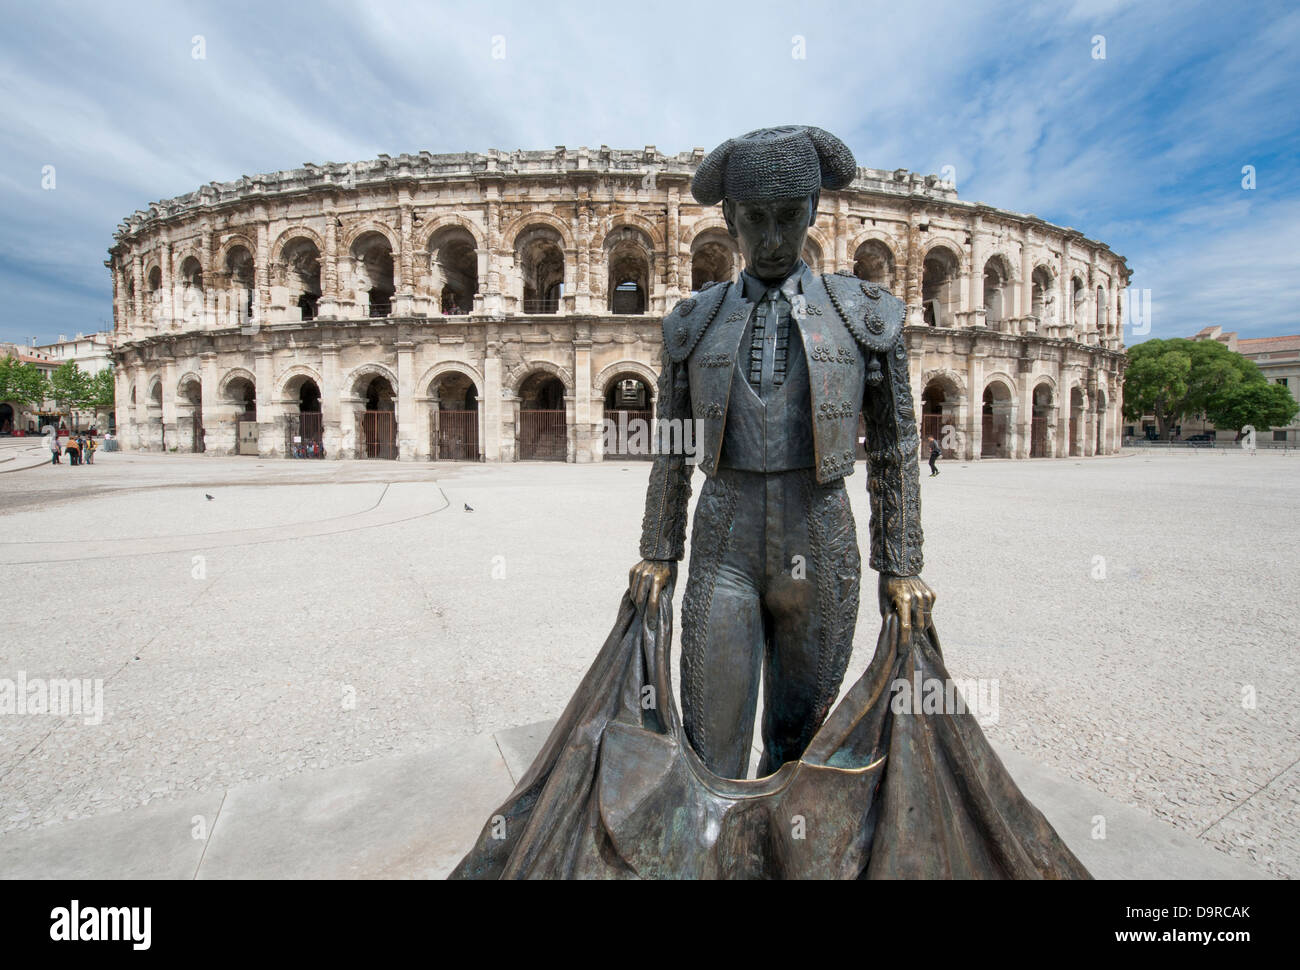 Statue of the famous bull-fighter Nimeño in front of Les Arénes, the roman amphitheatre in Nîmes, - Stock Image